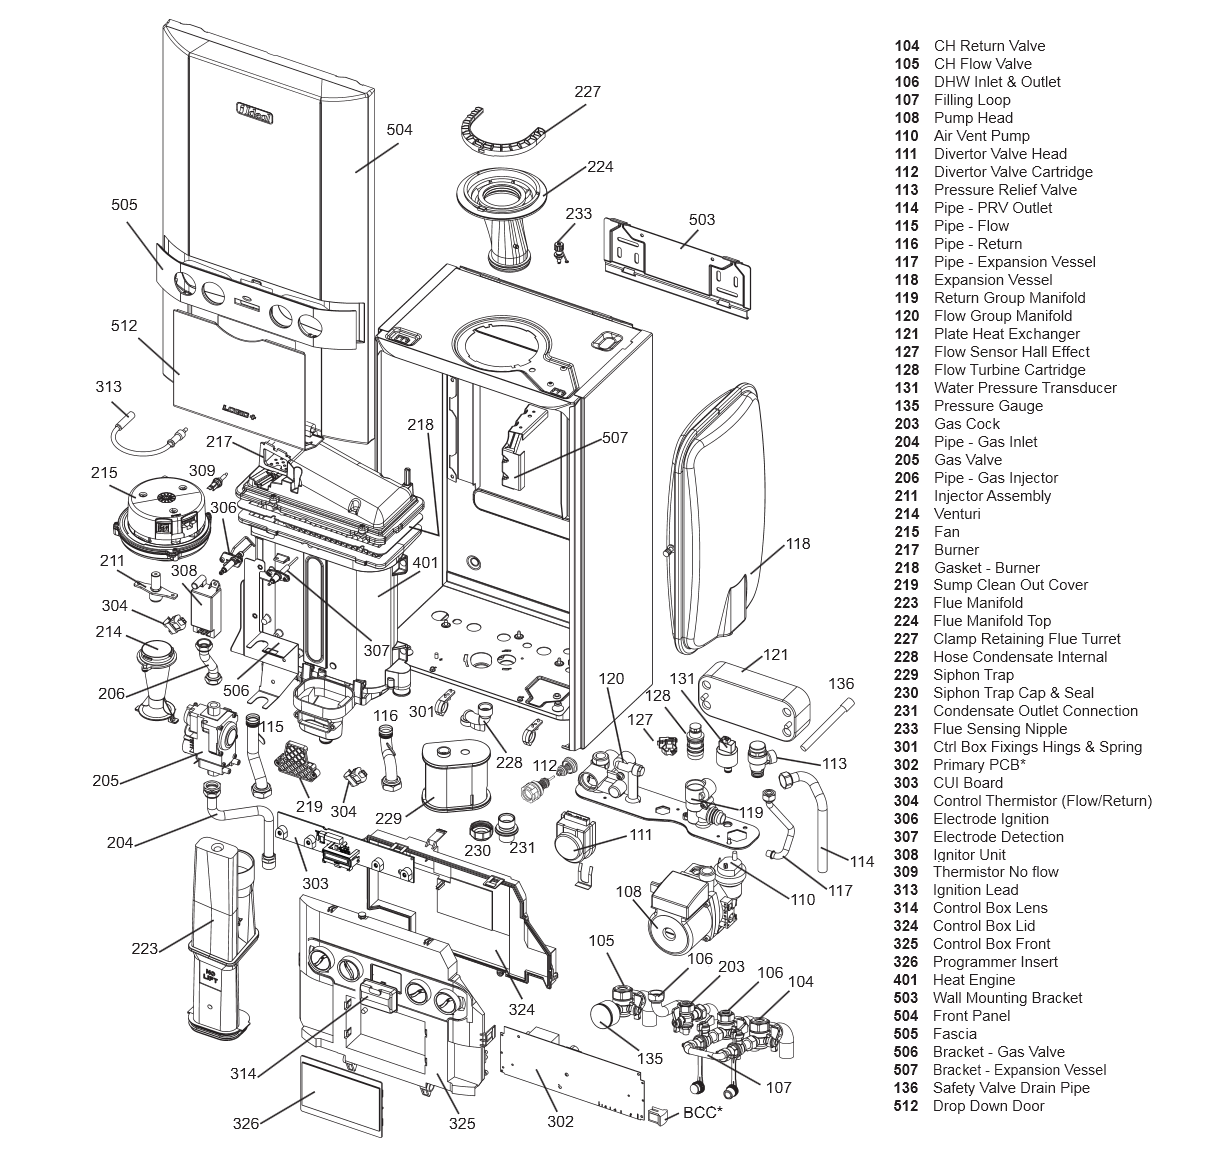 Boiler Manuals: Ideal Logic + Combi 24 Manual Products